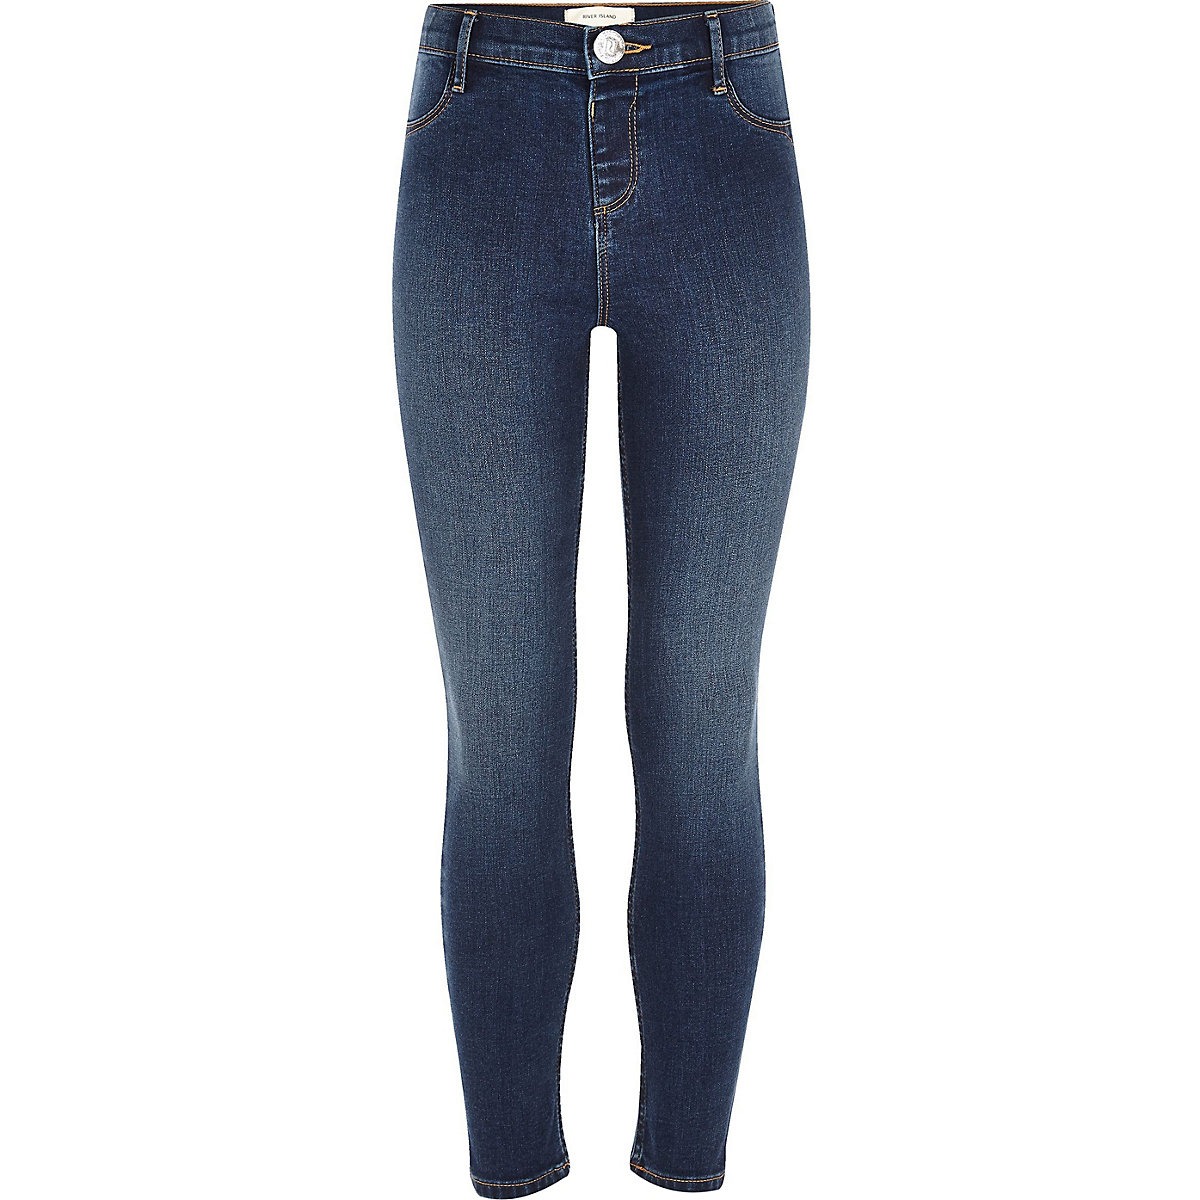 Blue Jeans for Girls